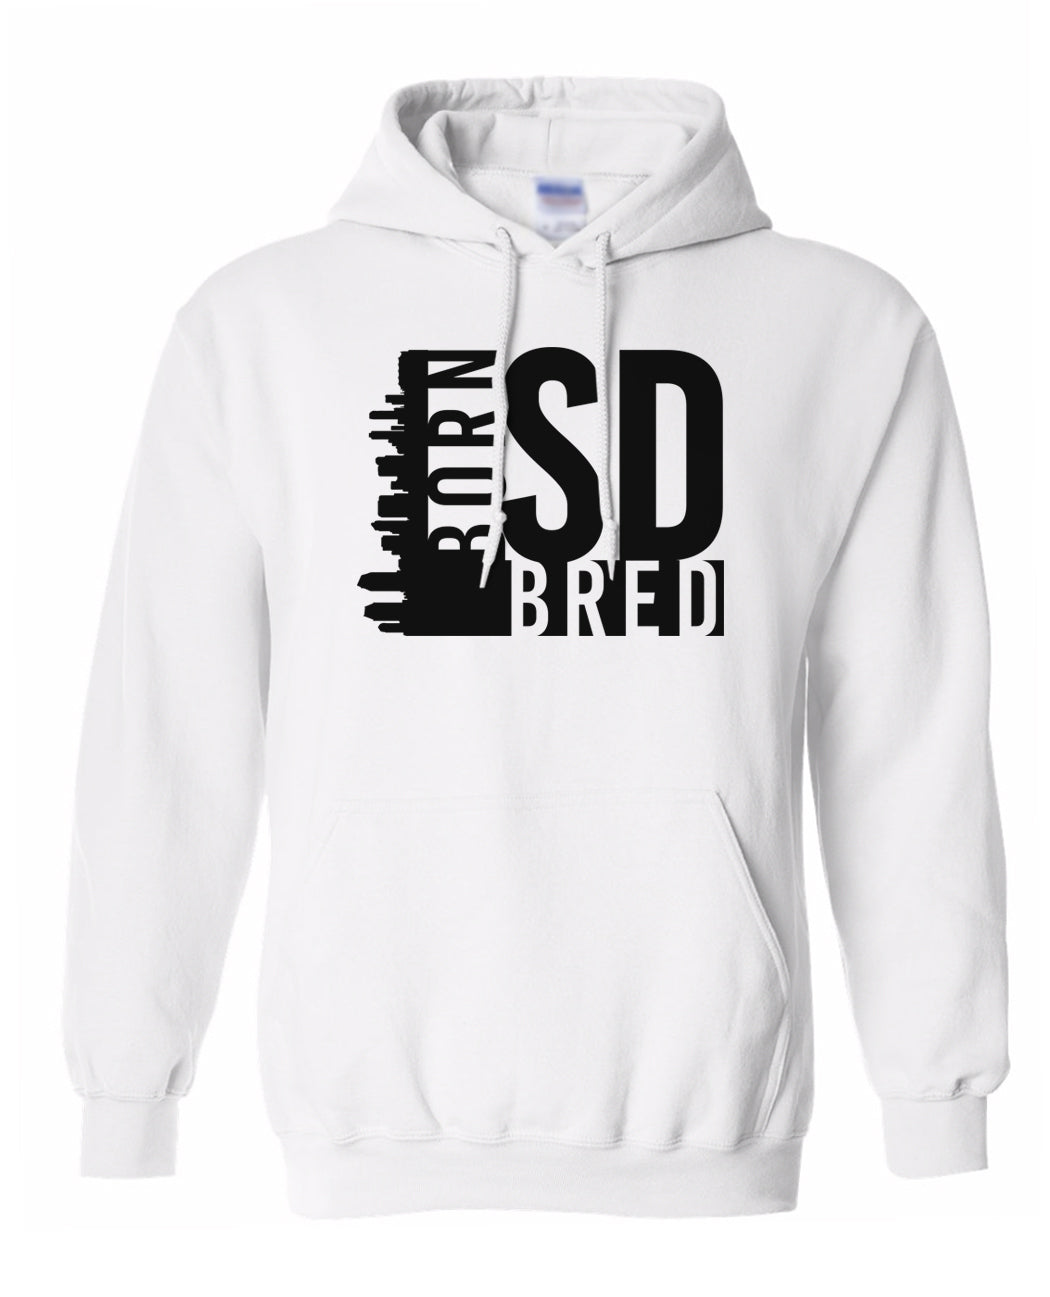 white San Diego born and bred hoodie